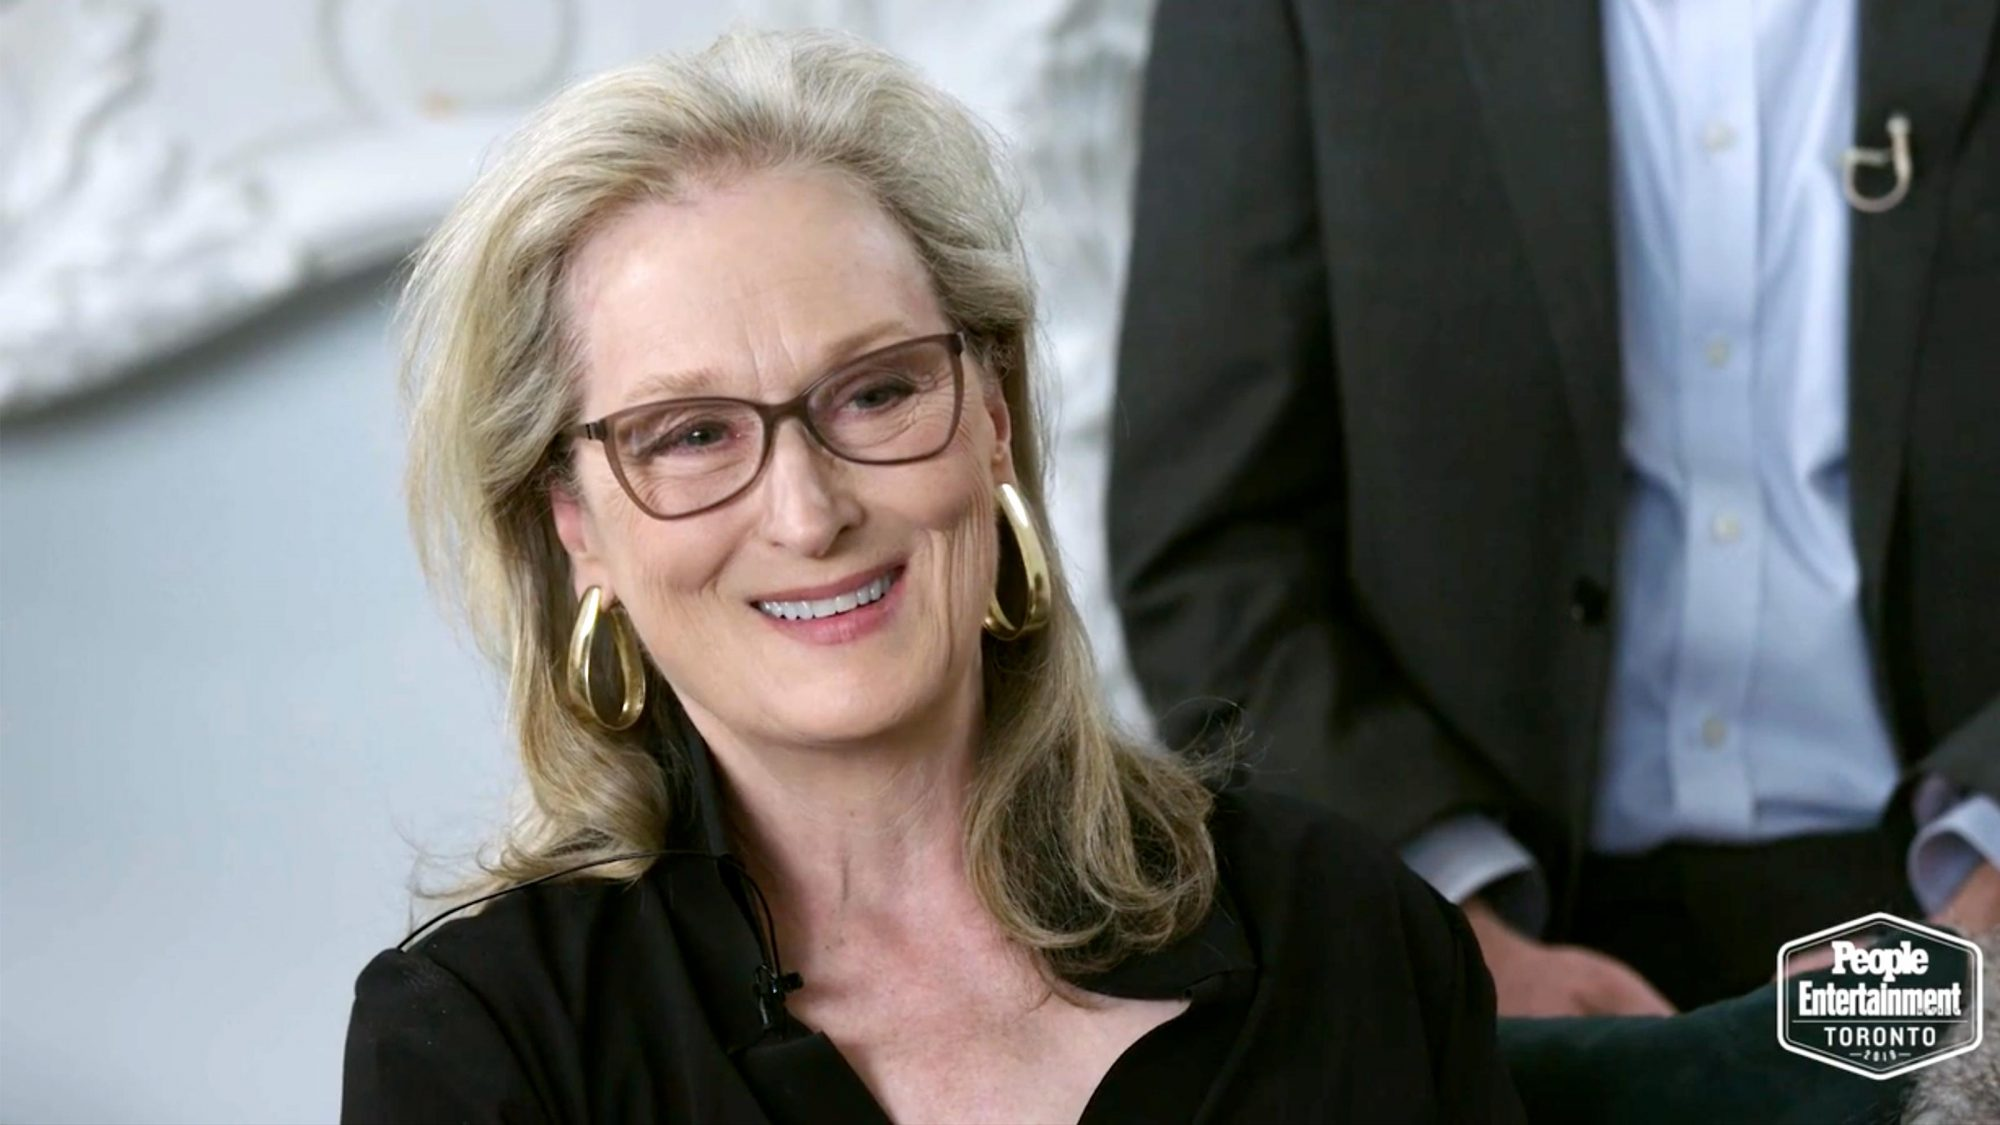 Meryl Streep The Laundromat TIFF Interview (screen grab)